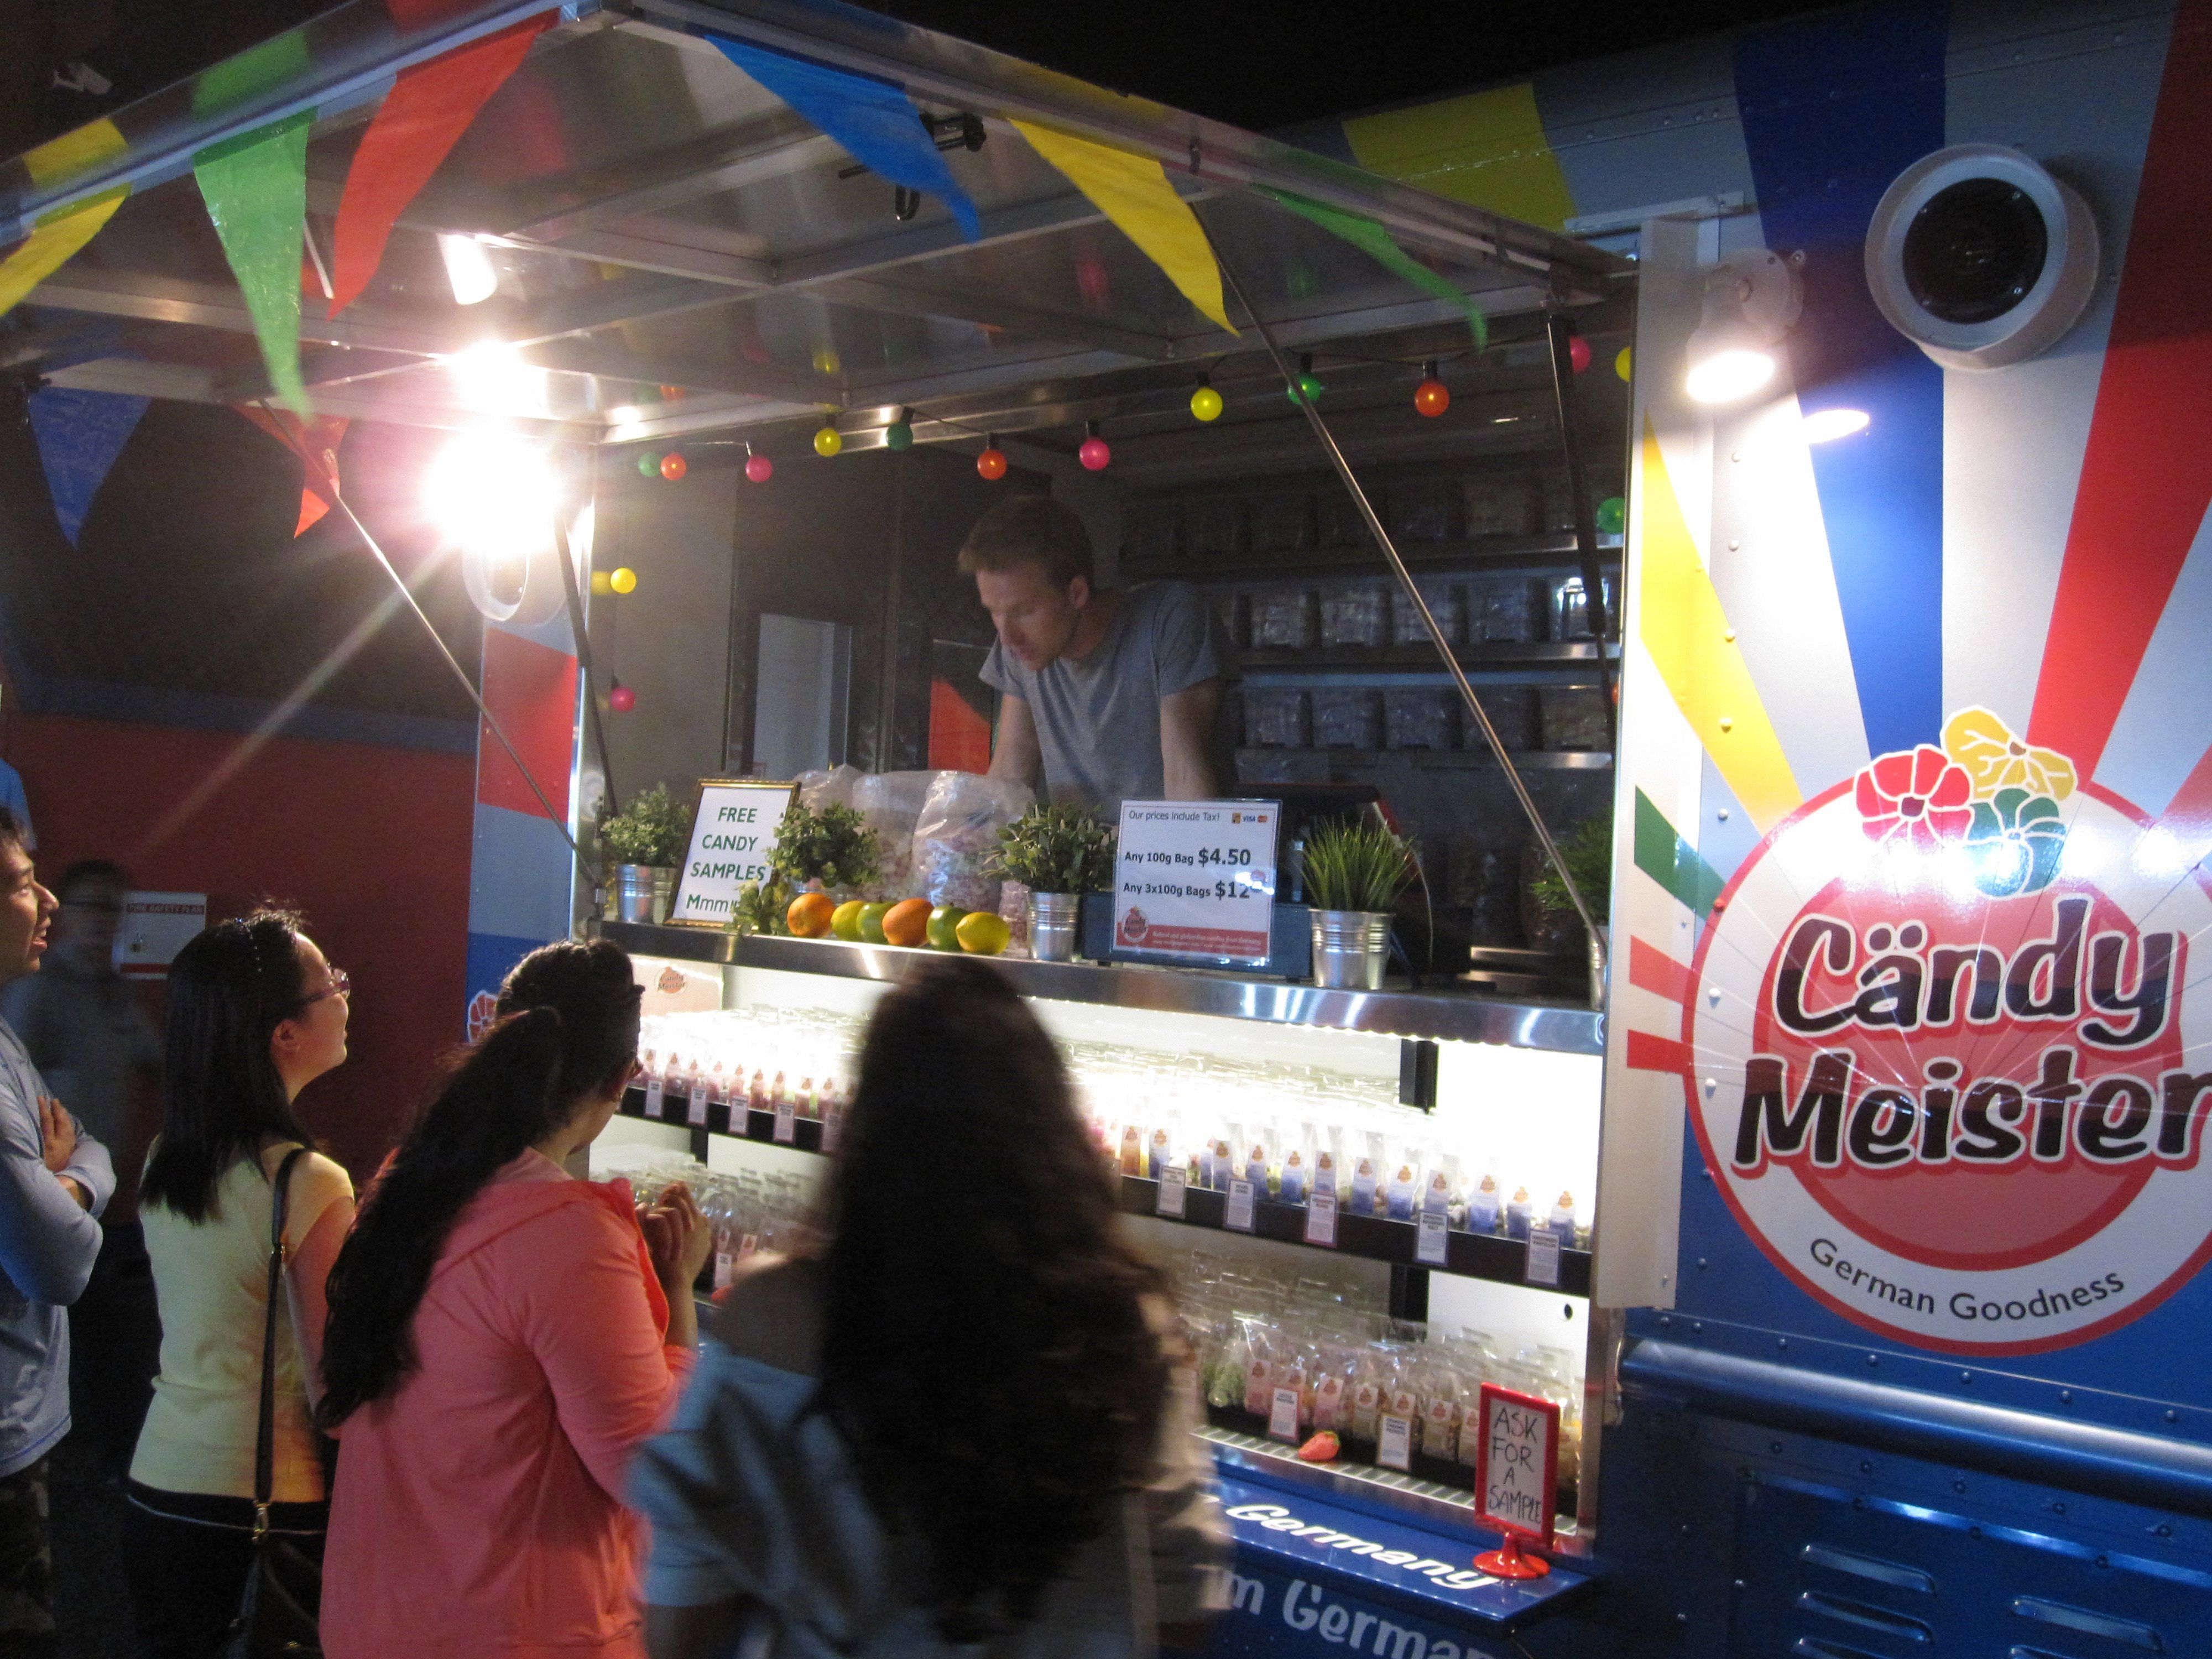 Here we are on the first night of the job. During our soft launch weekend, we were at the Richmond Summer International Night Market, giving away samples of so many of our different candies. Raspberry, lemons, orange slices...too many to name, but too good to pass up. Visit us at www.candy-meister-van.com to find out where we'll be next.